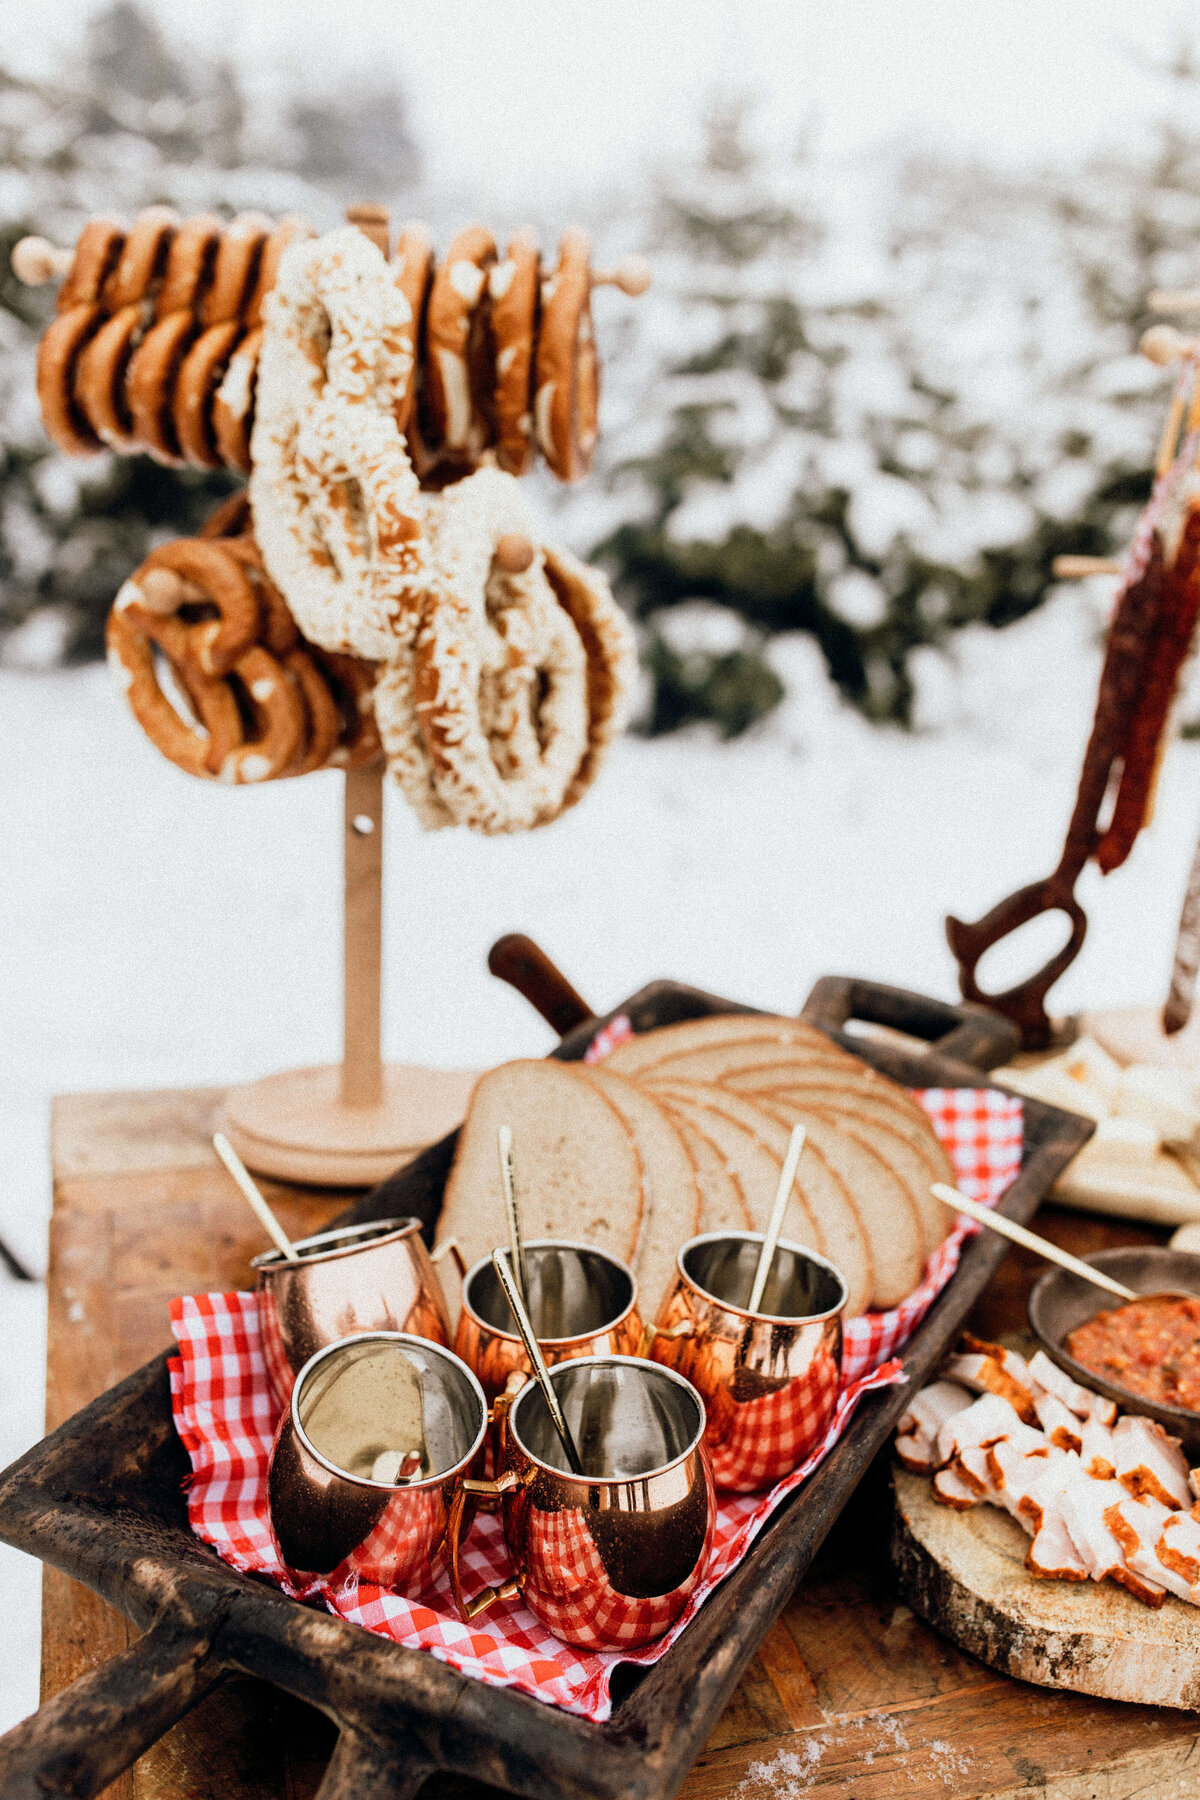 Styled Shoot - Winter Wonderland - Duitsland - 2019 2737